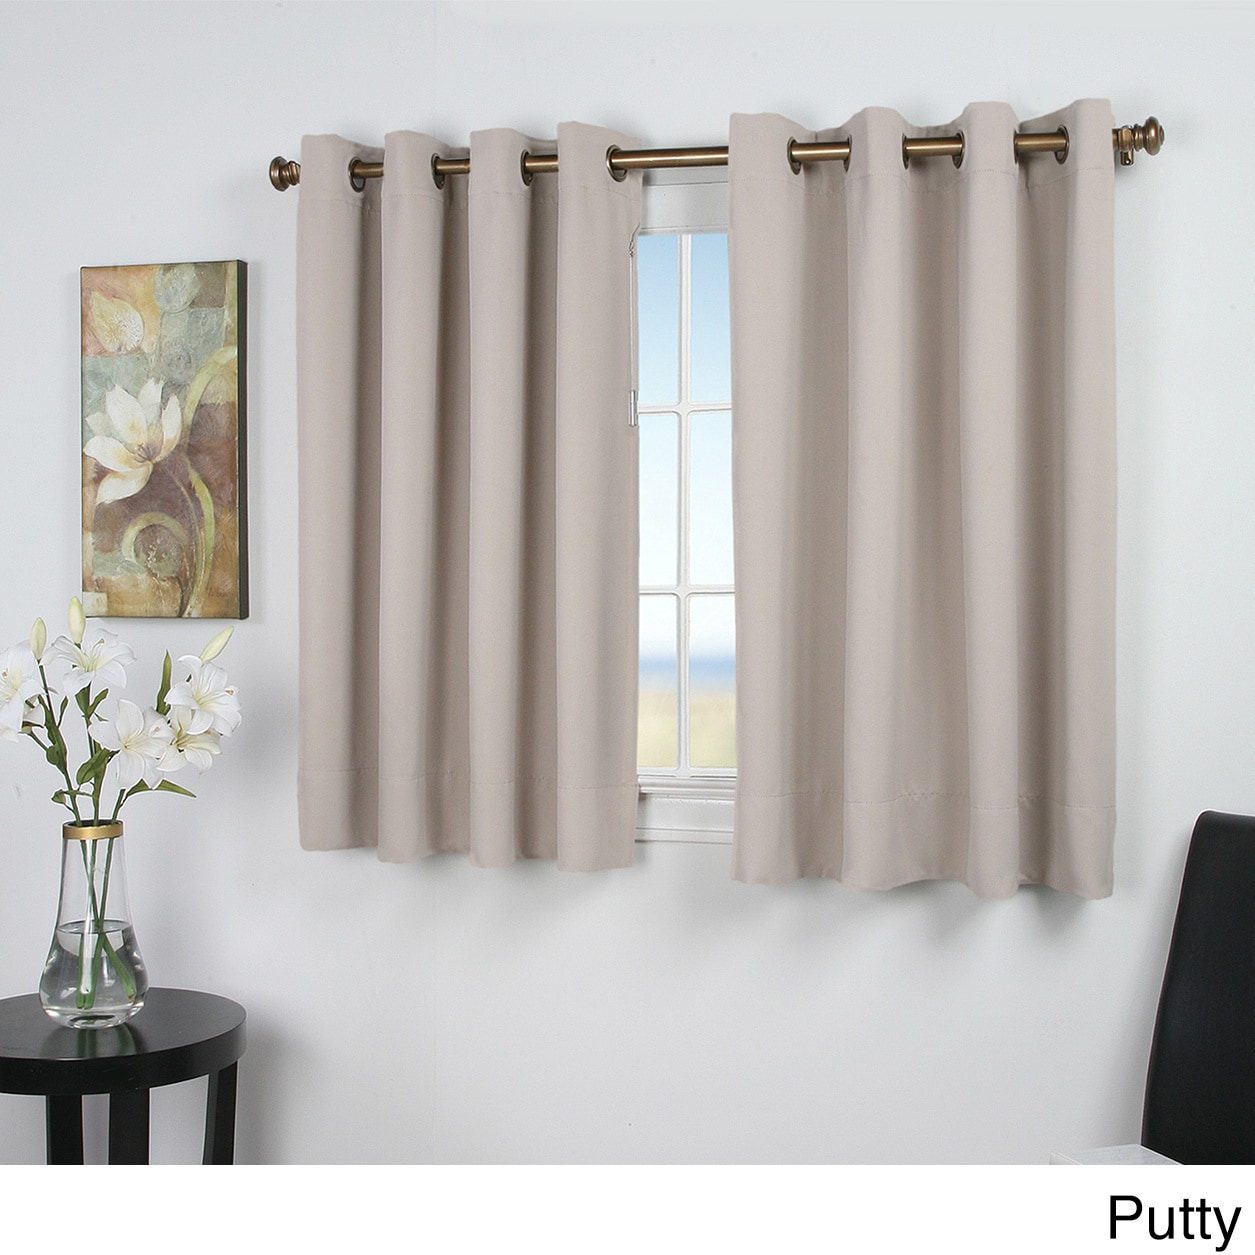 aurora pair curtains today home curtain blackout panel shipping foil modern product grommet inch overstock free garden x